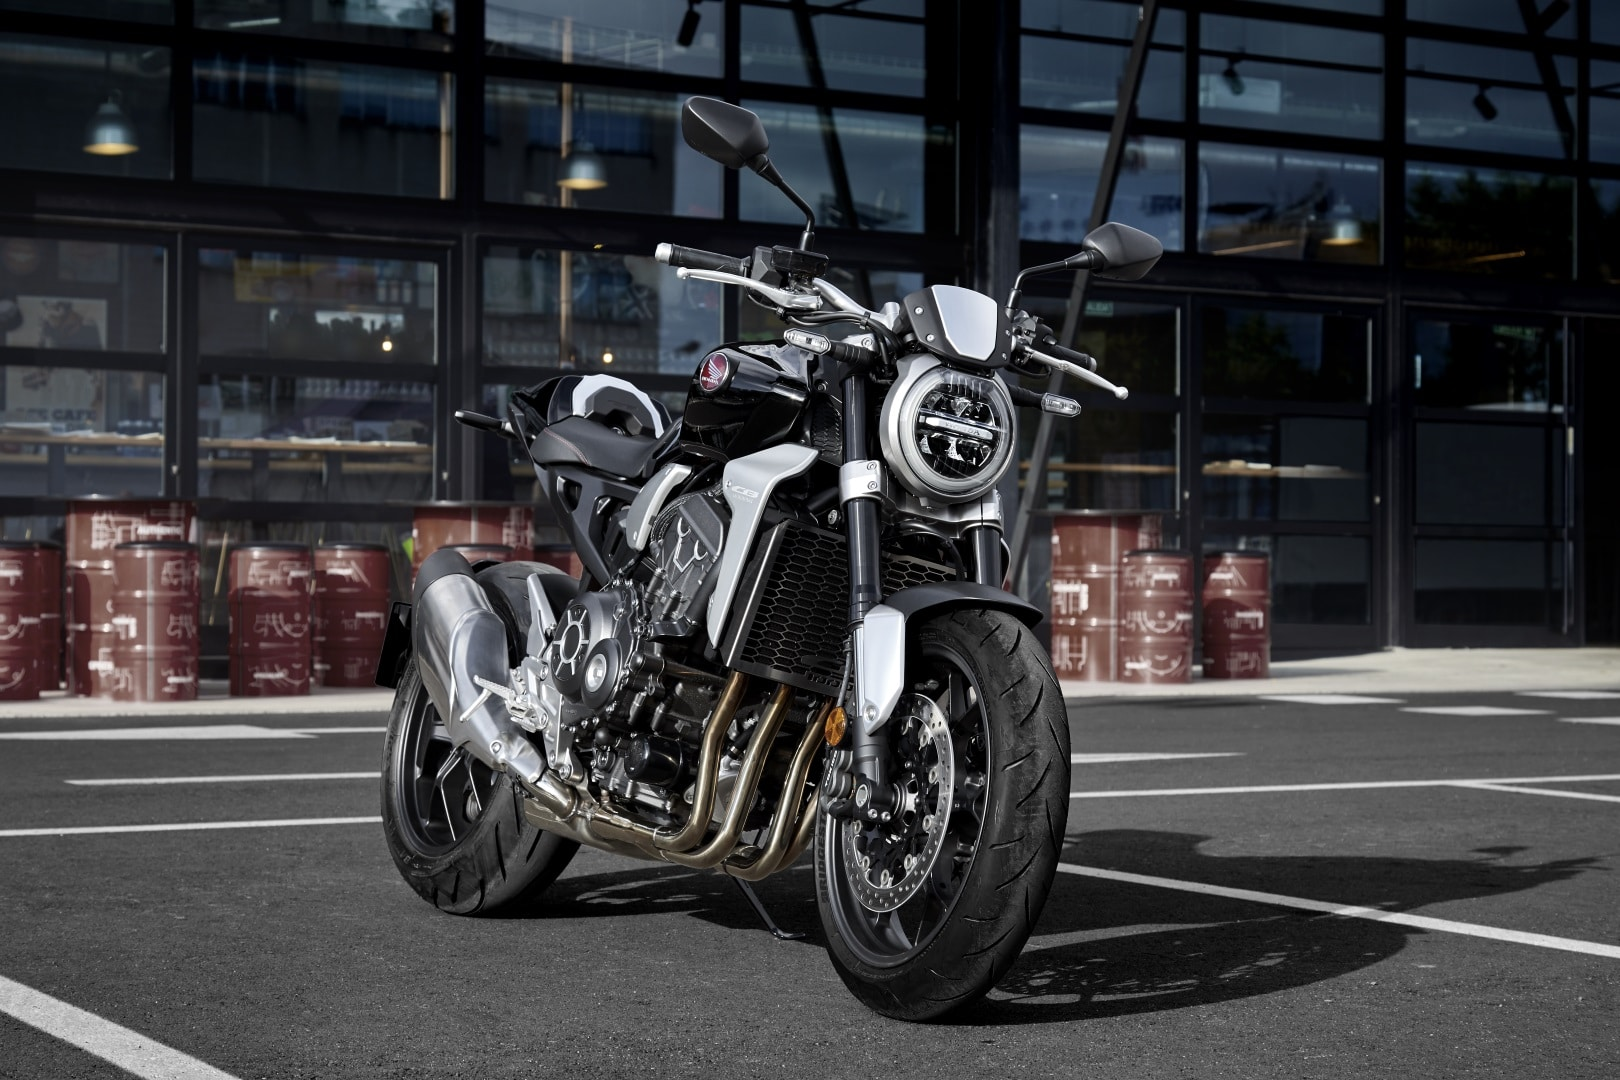 honda cb1000r neo sports cafe motorcycle front design